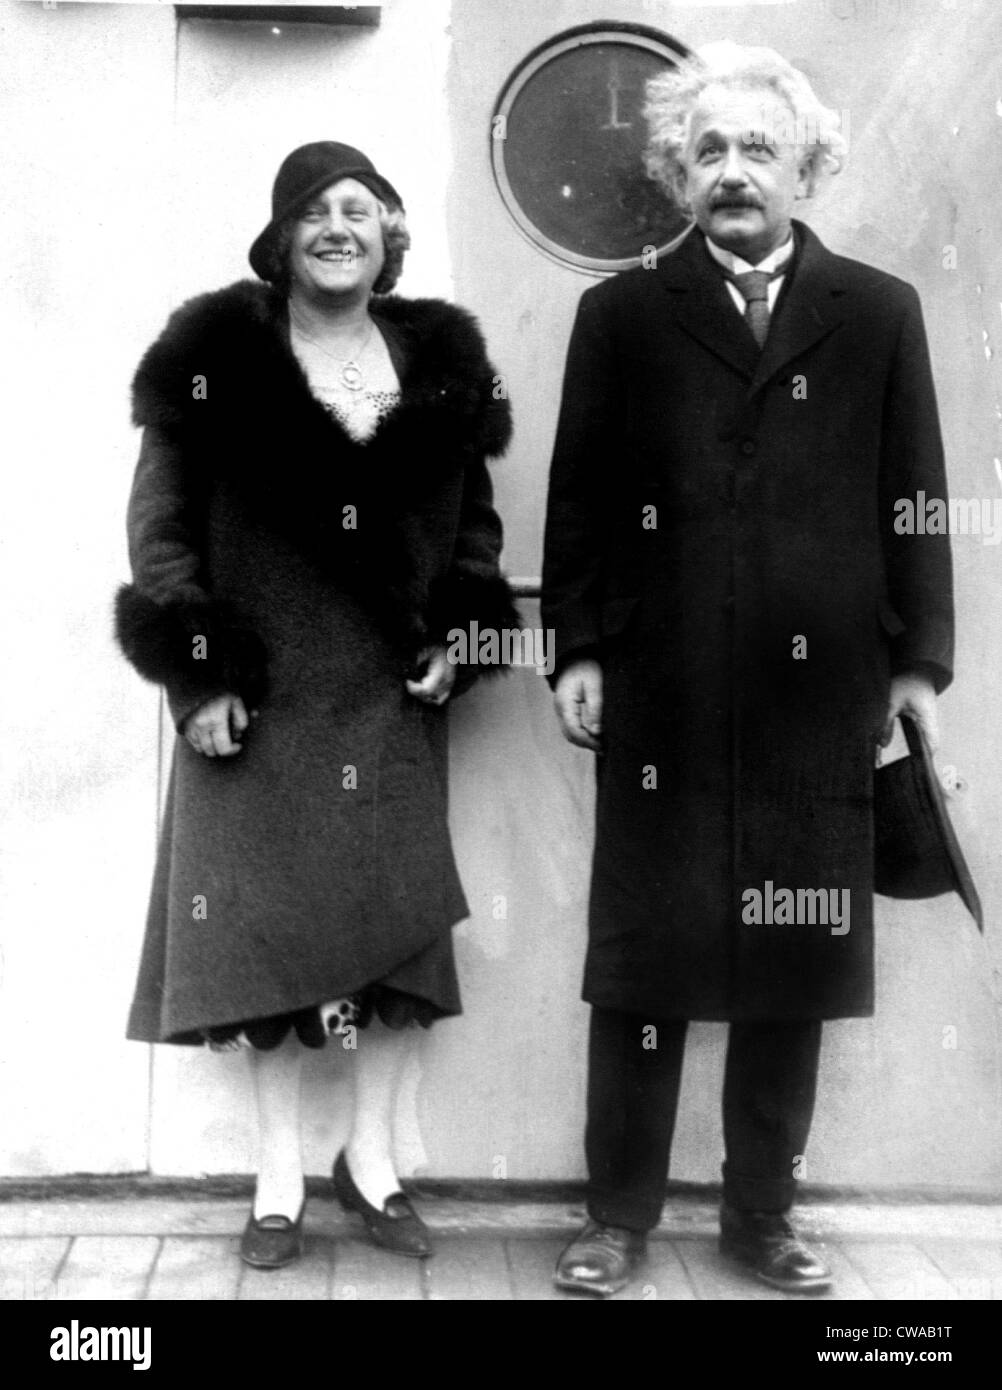 ELSE EINSTEIN and husband ALBERT EINSTEIN aboard the S.S. Bolgenland sailing from Antwerp to the U.S., December, - Stock Image